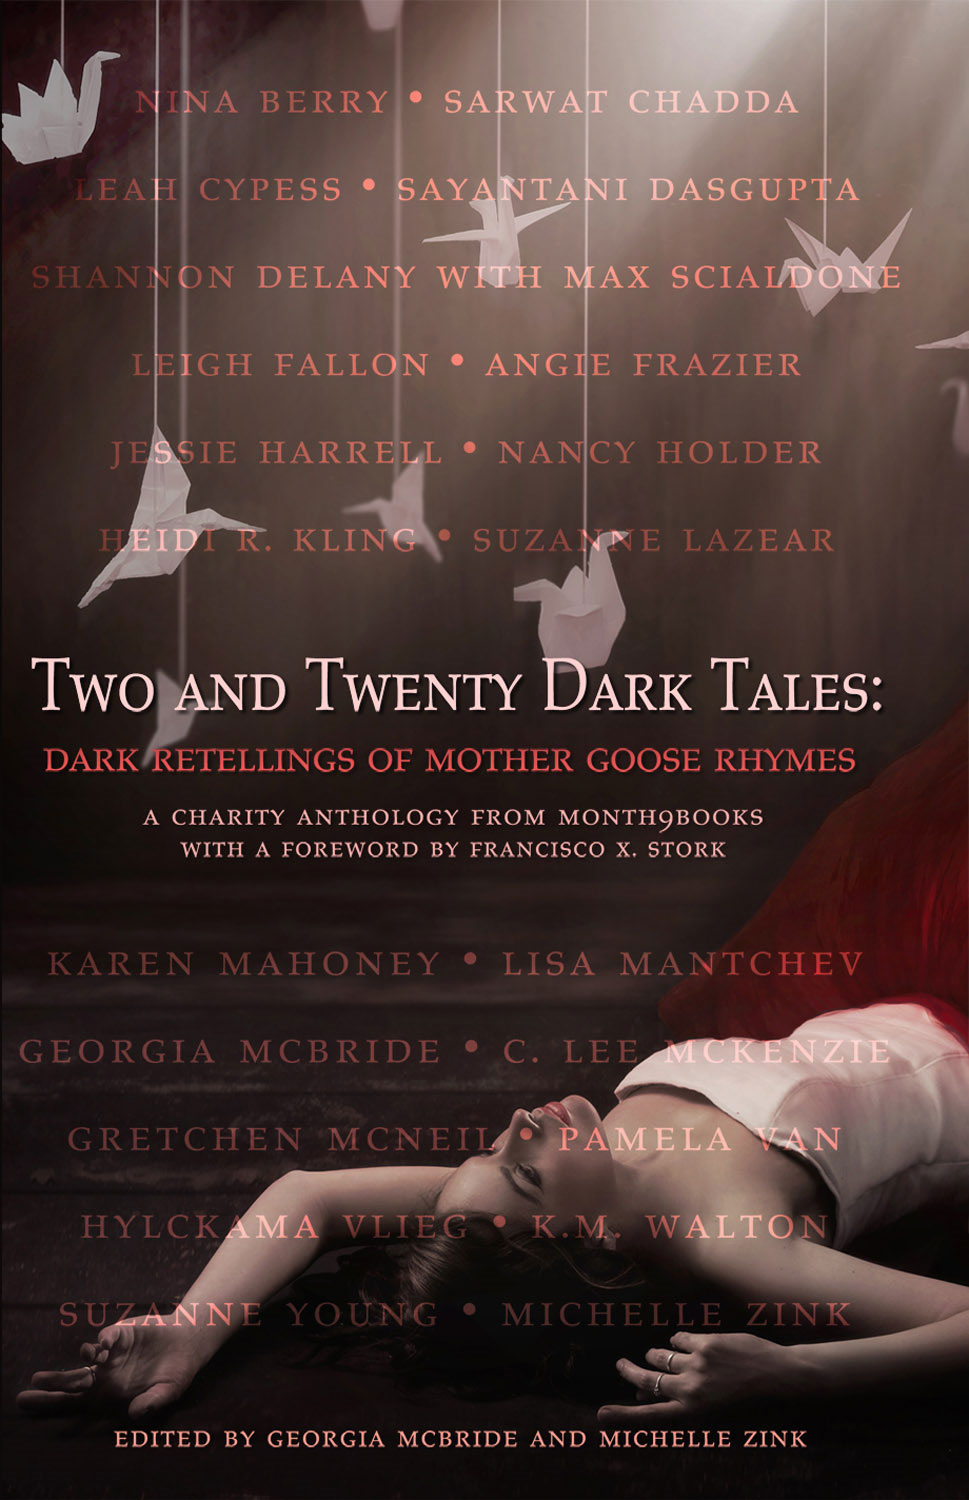 Two and Twenty Dark Tales: Dark Retellings of Mother Goose Rhymes By: